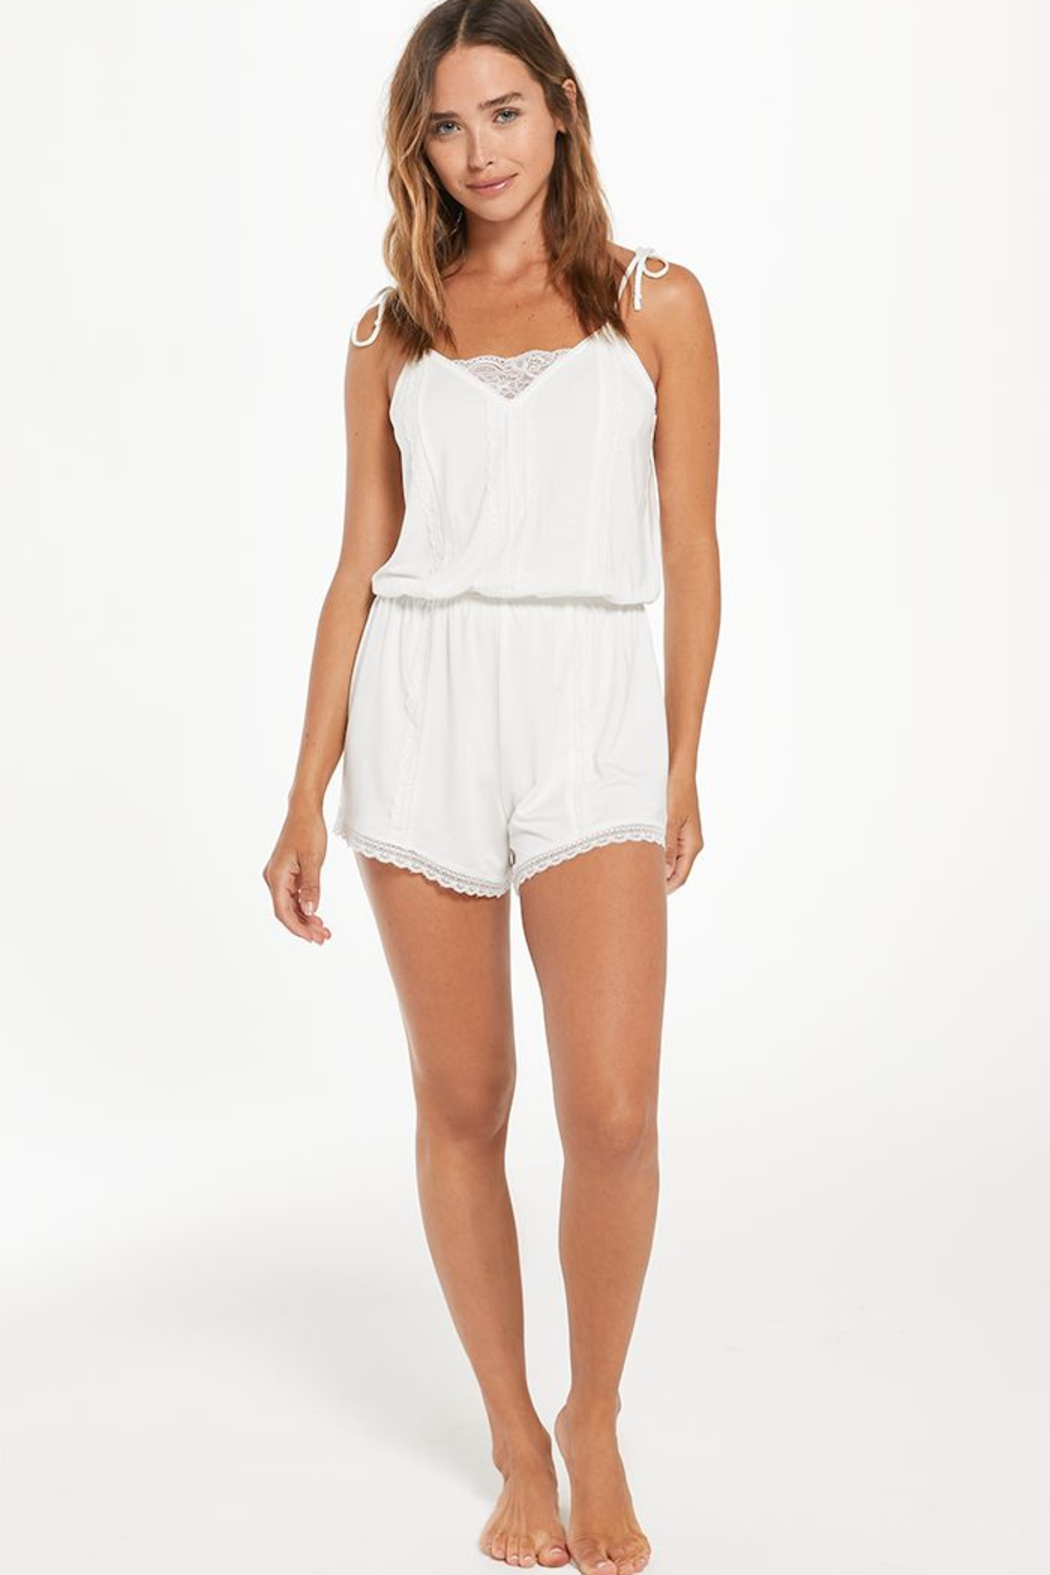 z supply Honeymoon Romper - Side Cropped Image